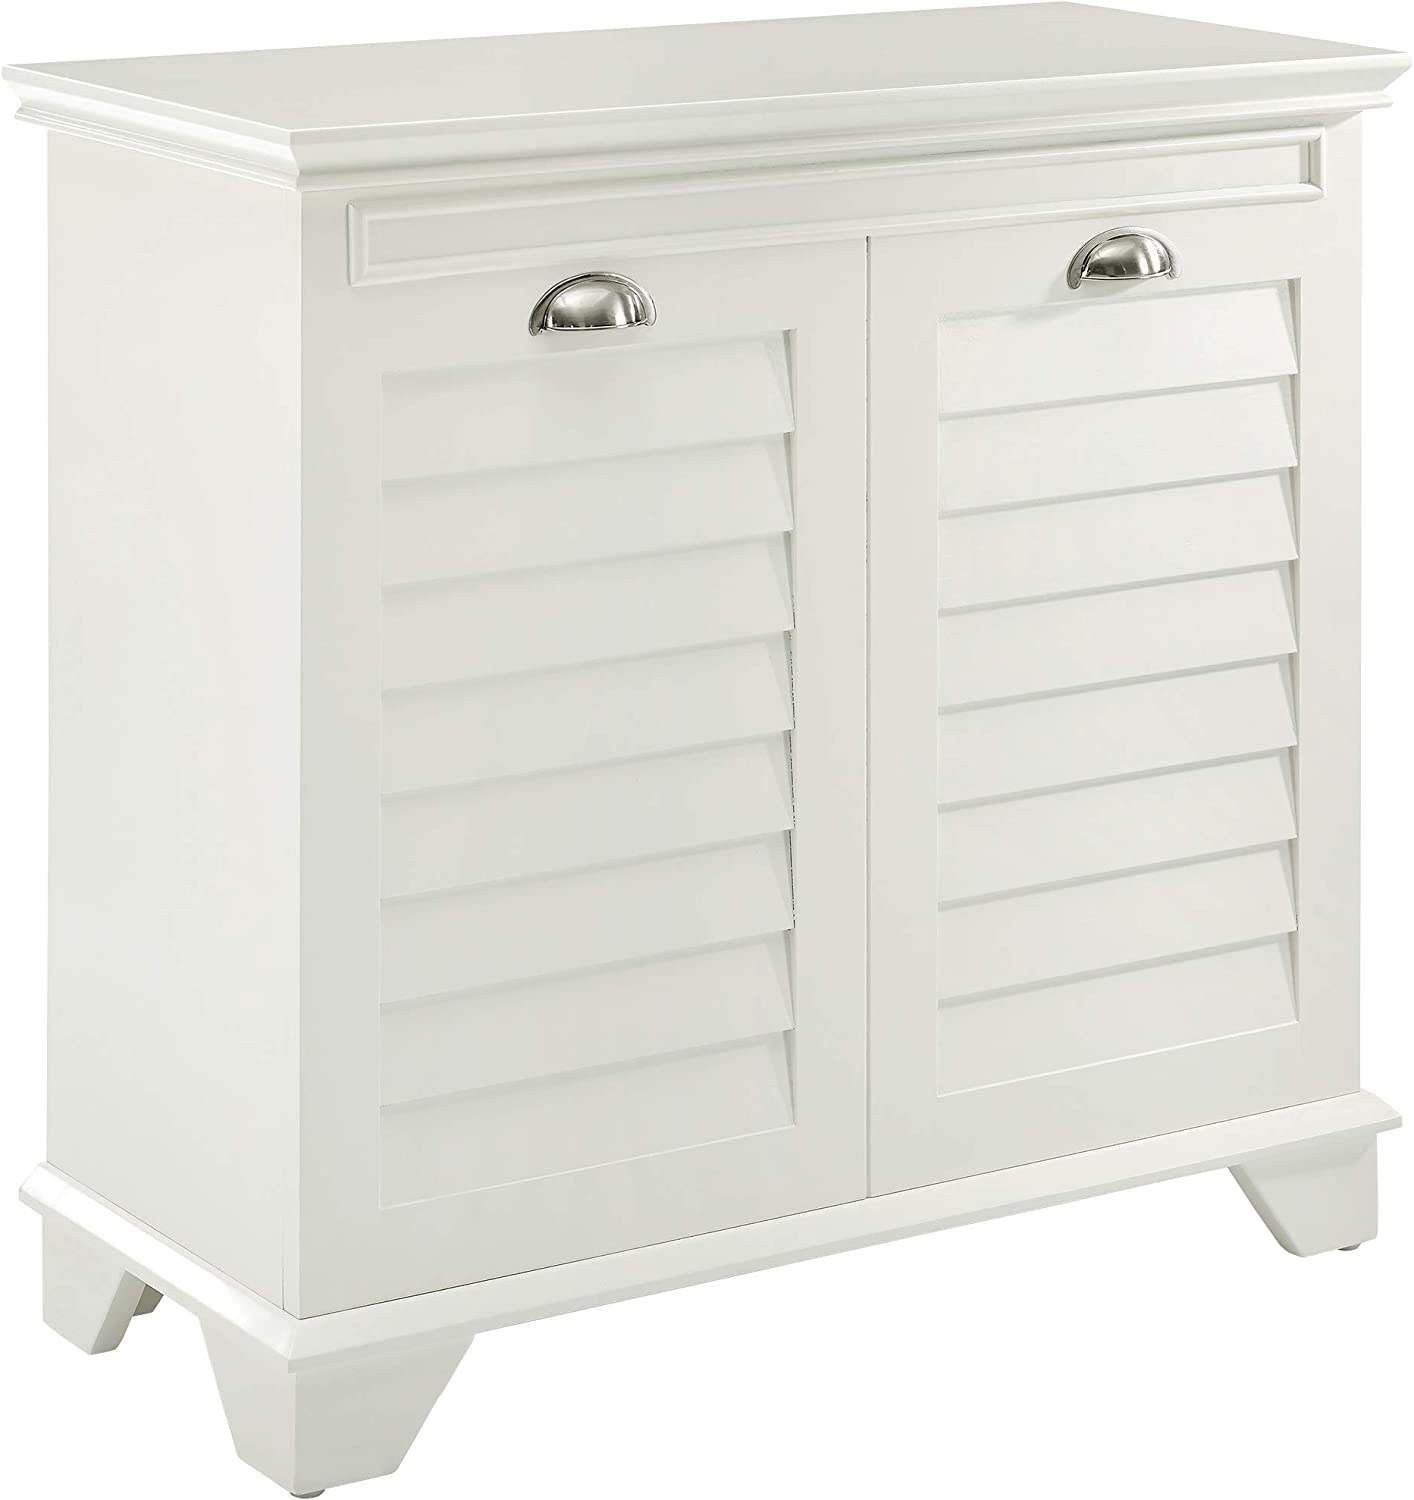 Crosley Furniture Lydia Two-Compartment Linen Hamper, White